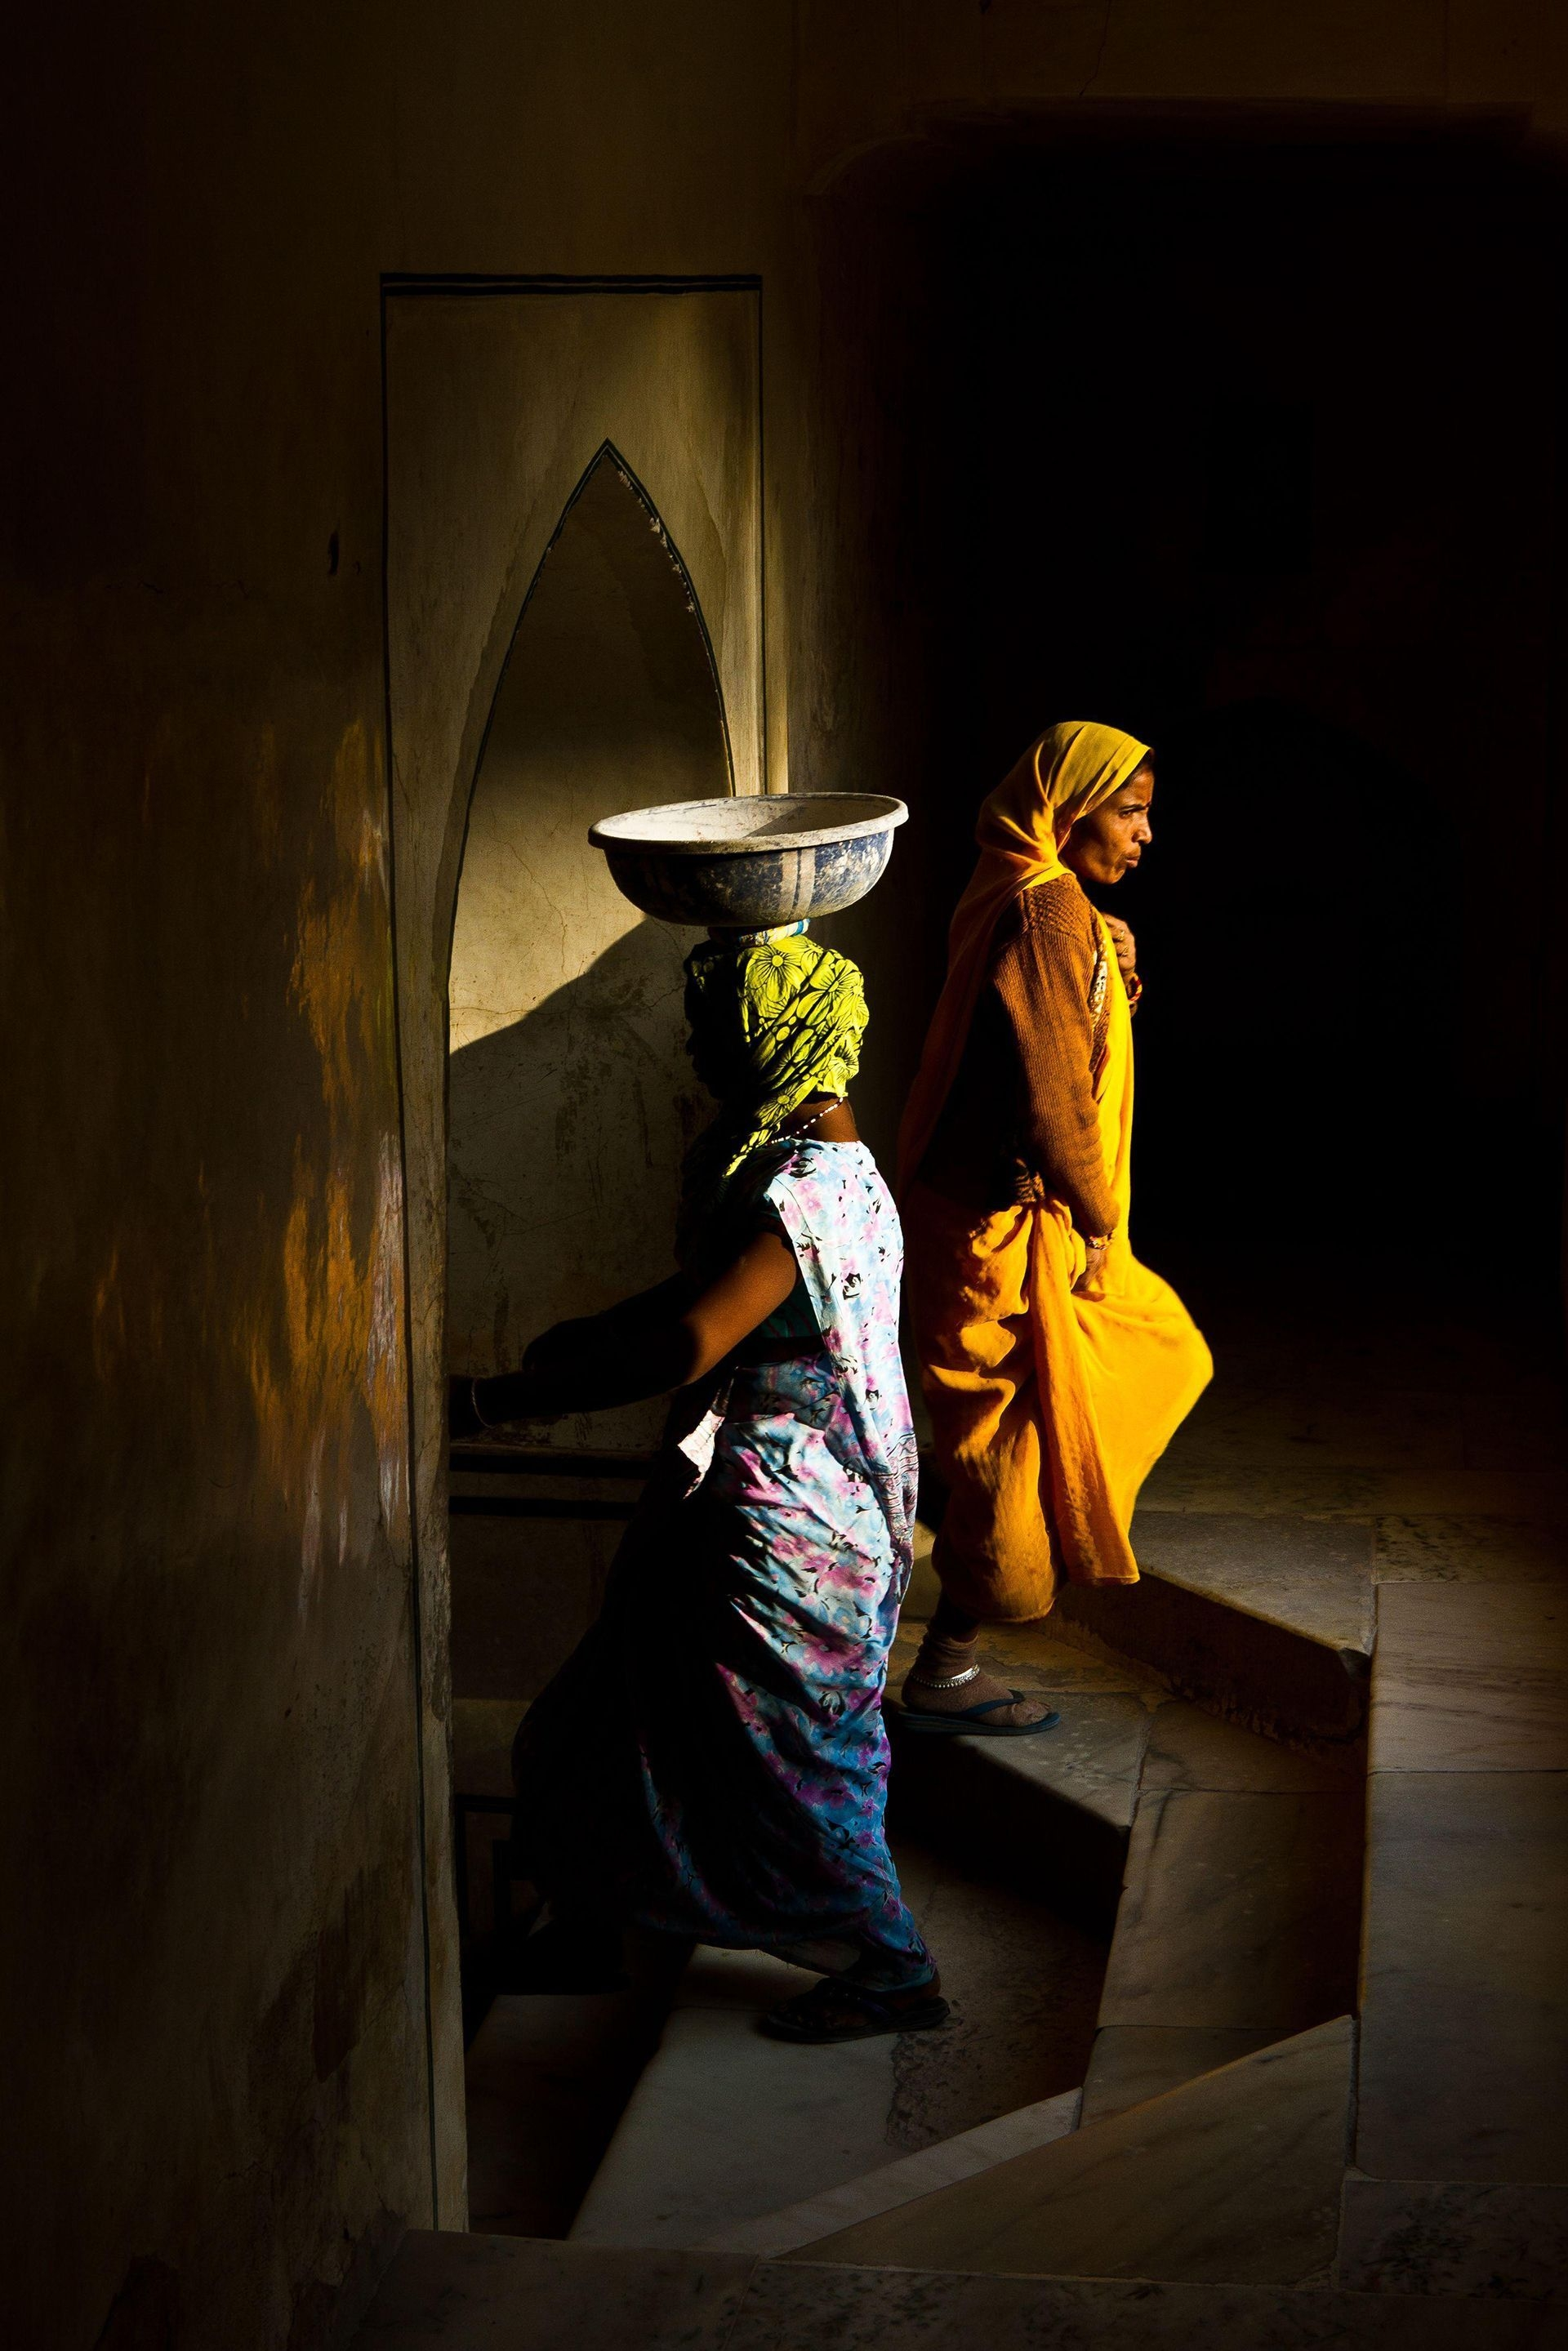 Photograph by Pascal Lachance, National Geographic Your Shot